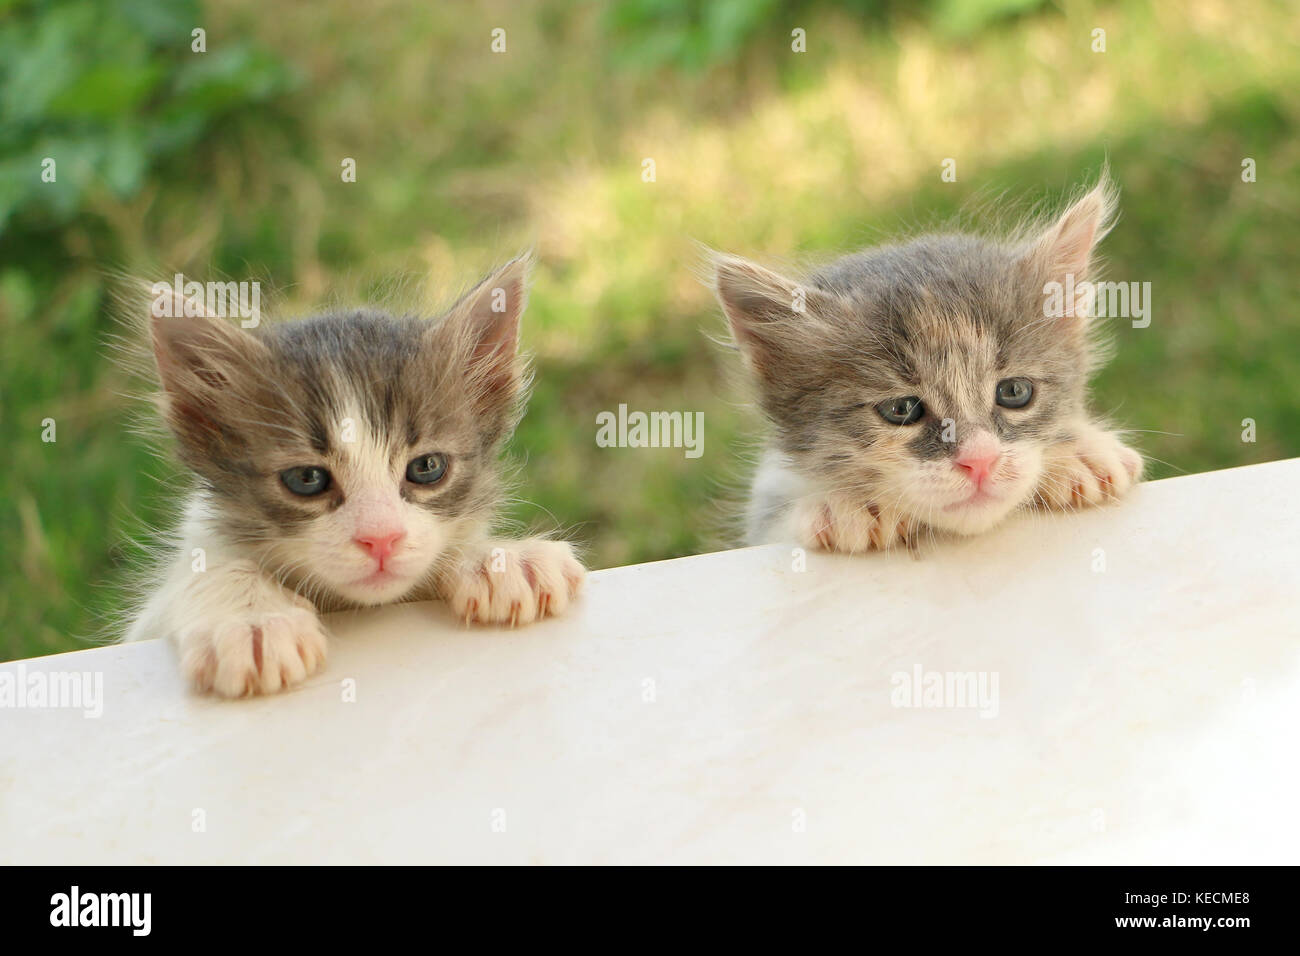 two kittens - Stock Image